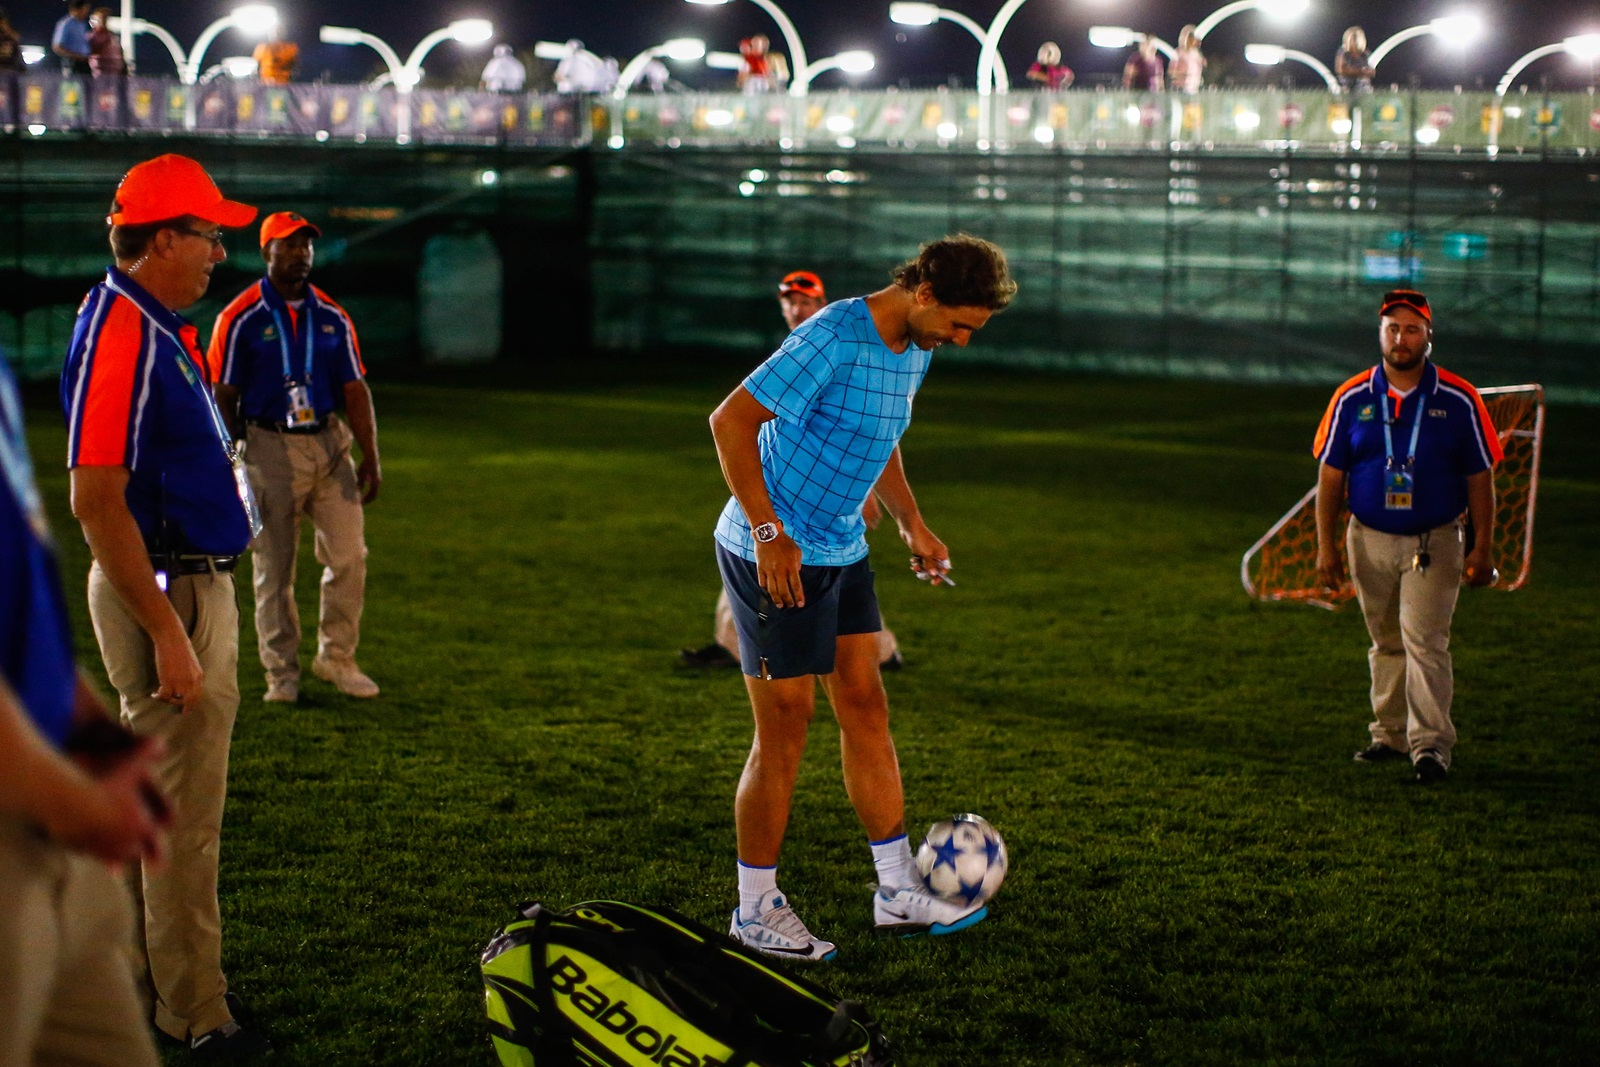 Rafael Nadal Taking A Break To Play Some Soccer At The Indian Wells Tennis  Garden In